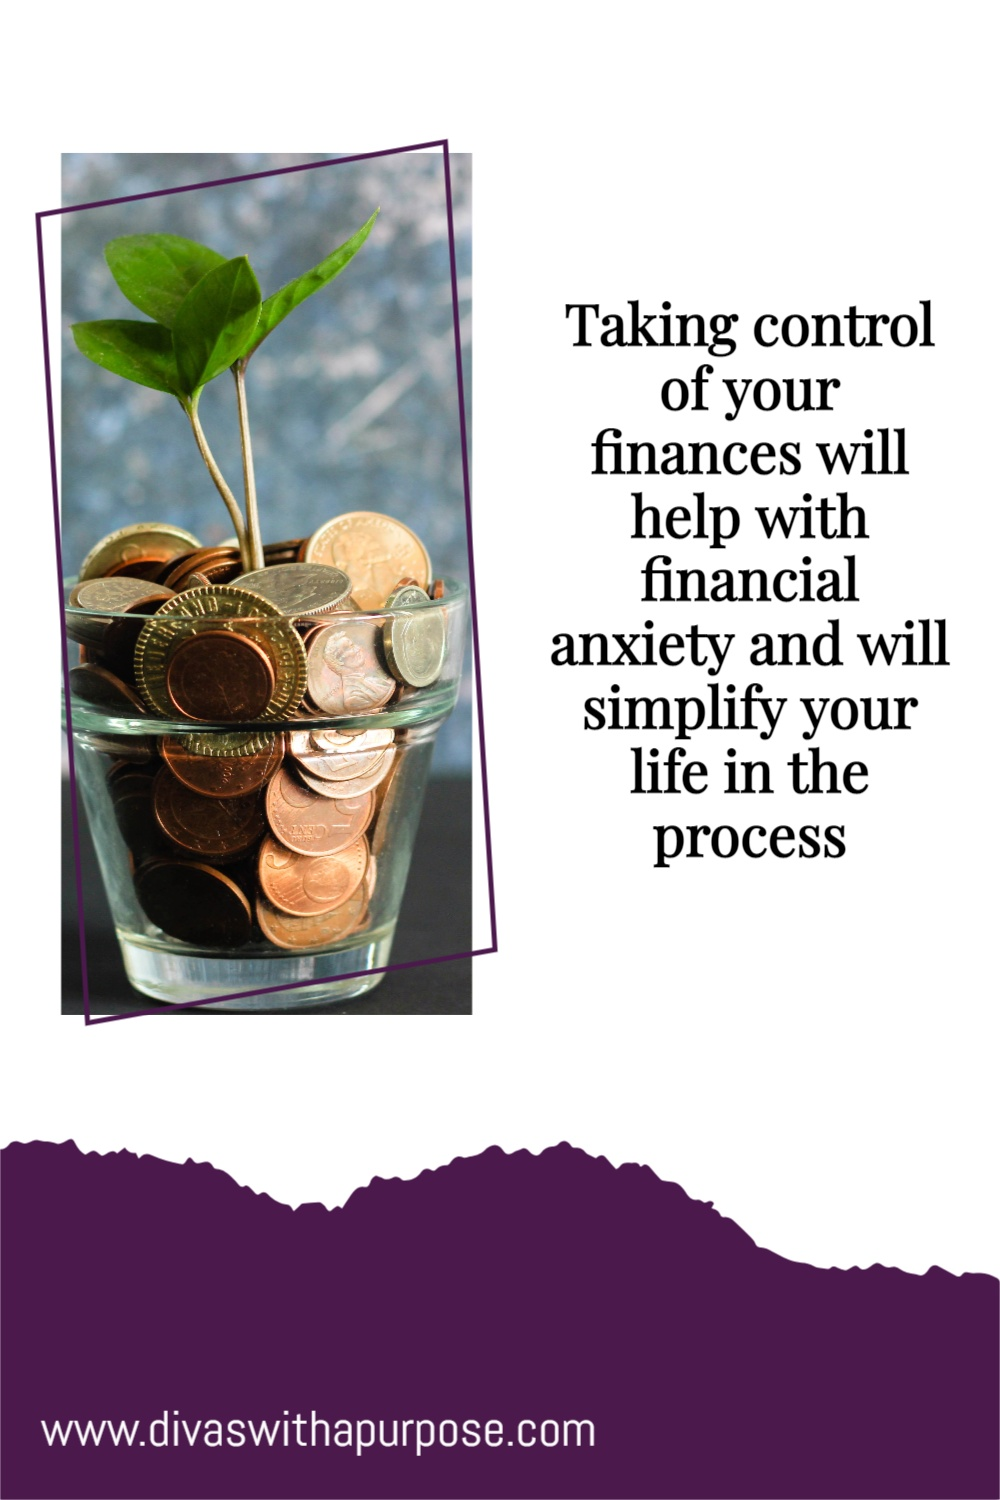 Taking control of your finances will help with financial anxiety and will simplify your life in the process